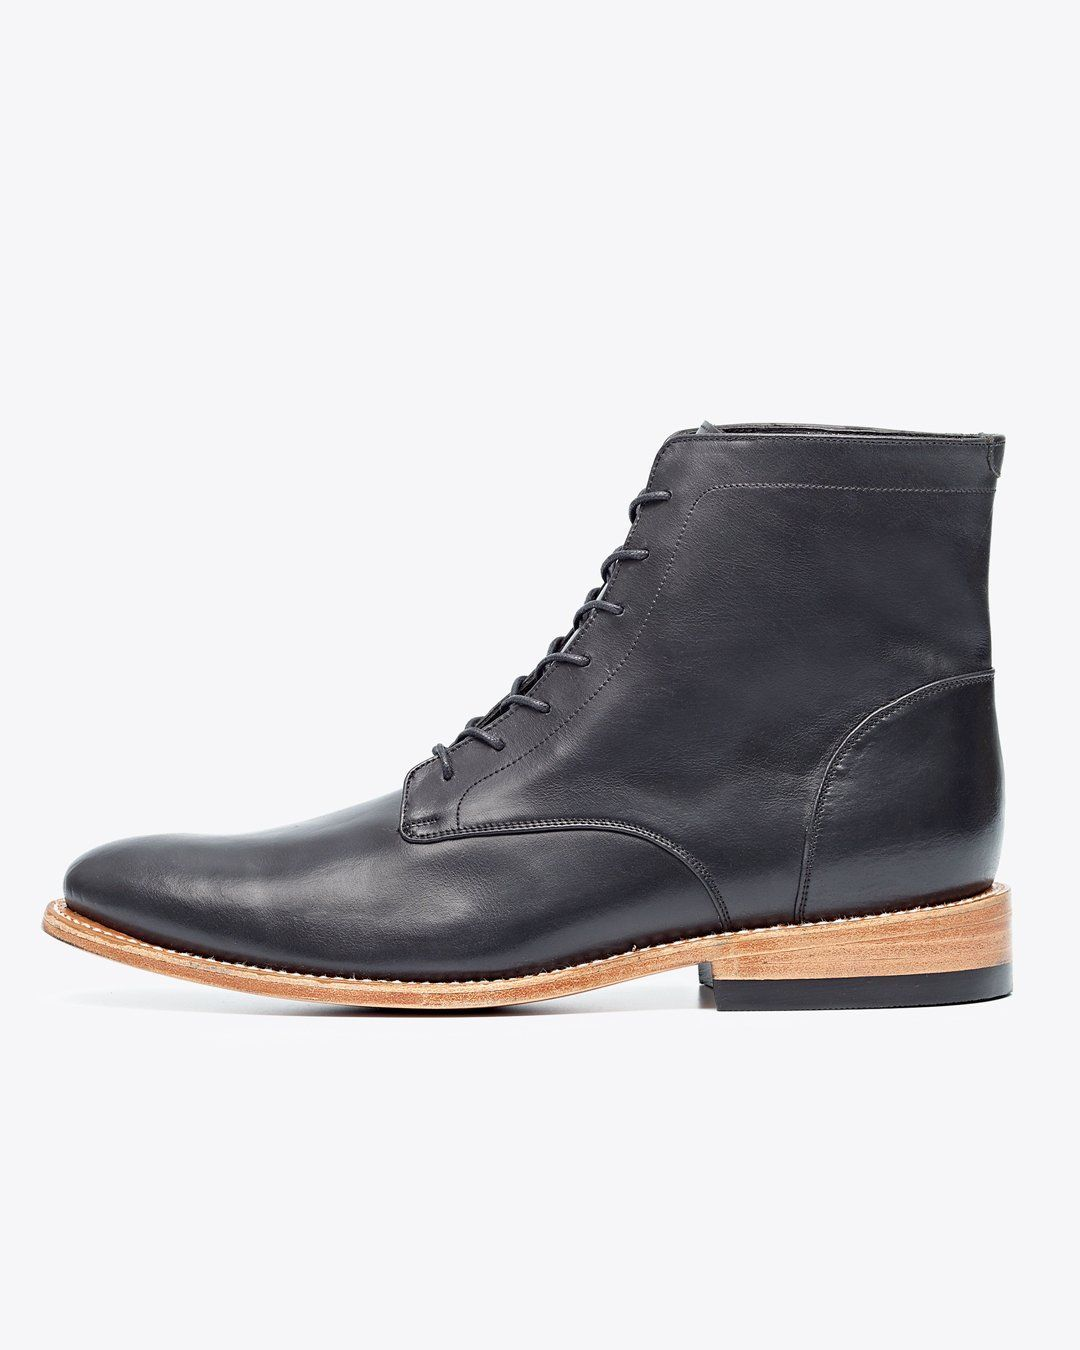 Nisolo Men's Luciano Boot Black